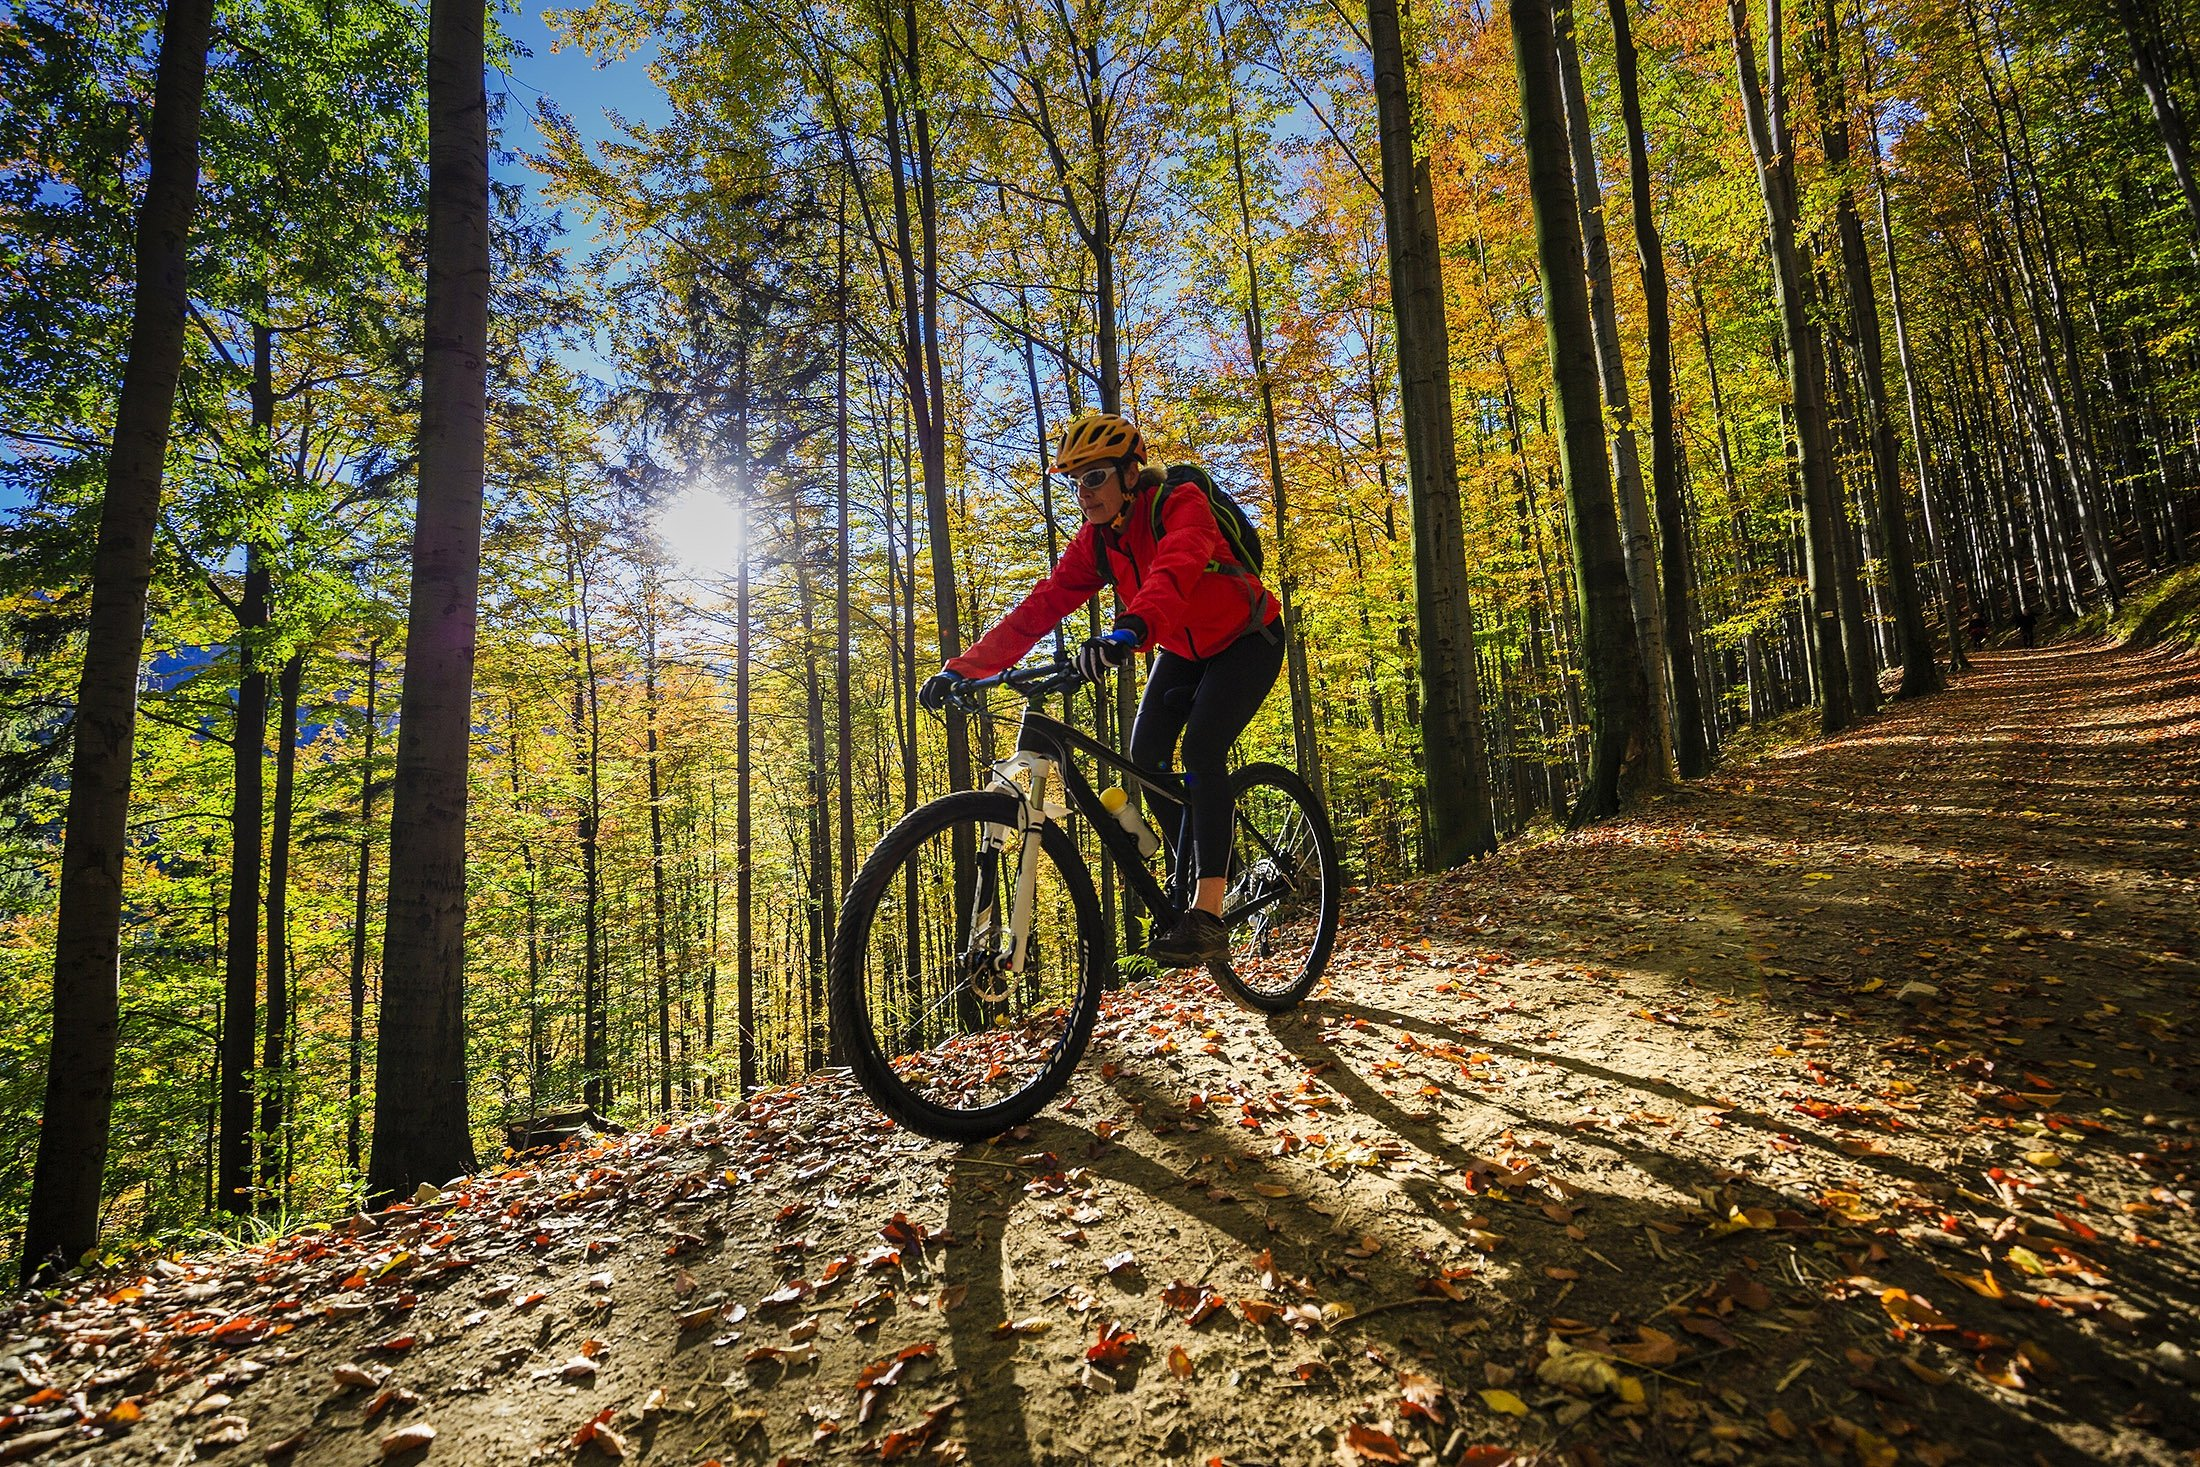 Biking can be very beneficial for health. (Shutterstock Photo)